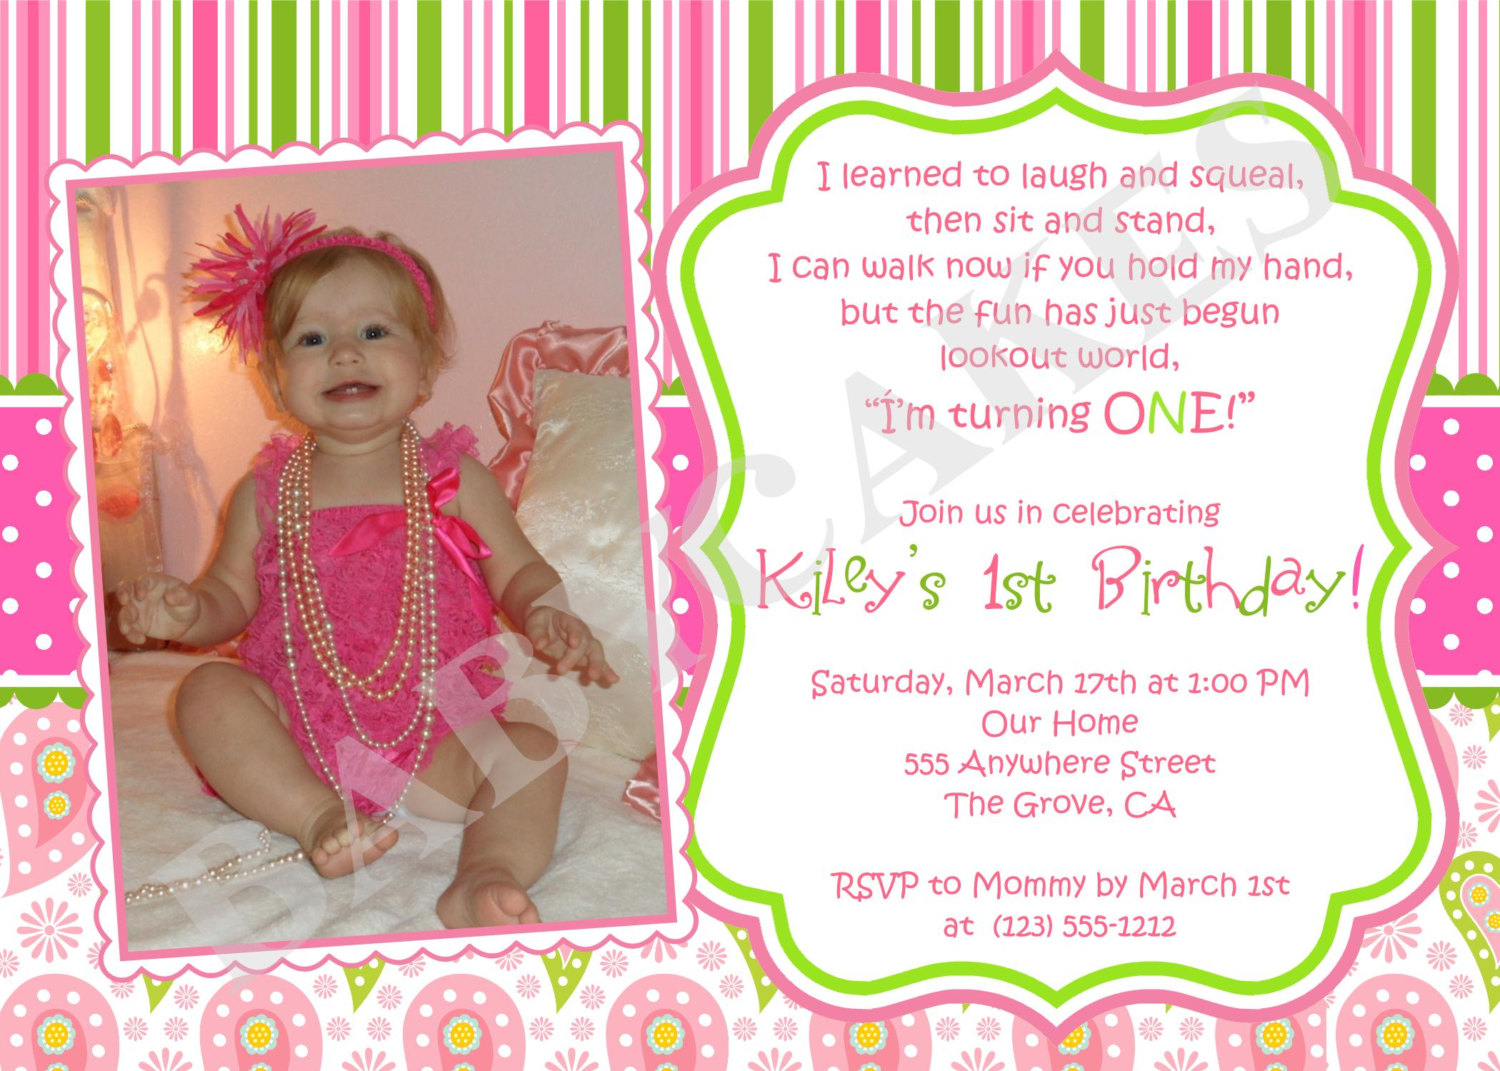 Invitation Card For First Birthday Party